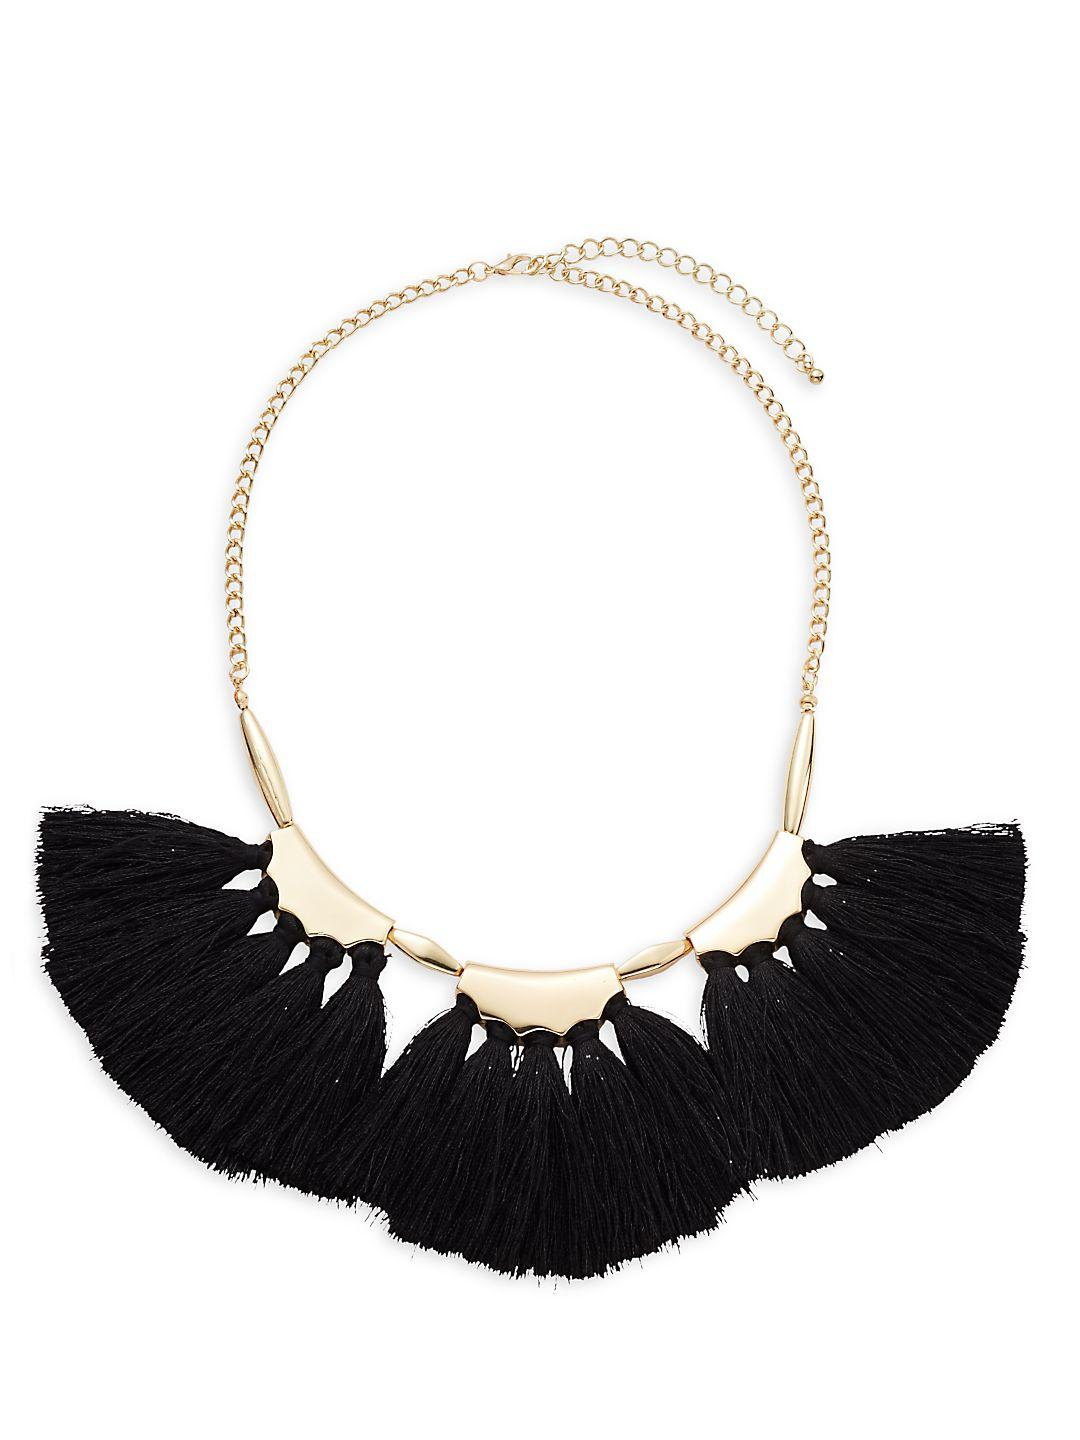 Saks Fifth Avenue Trio Tassel Fan Necklace in Gold Black (Black)